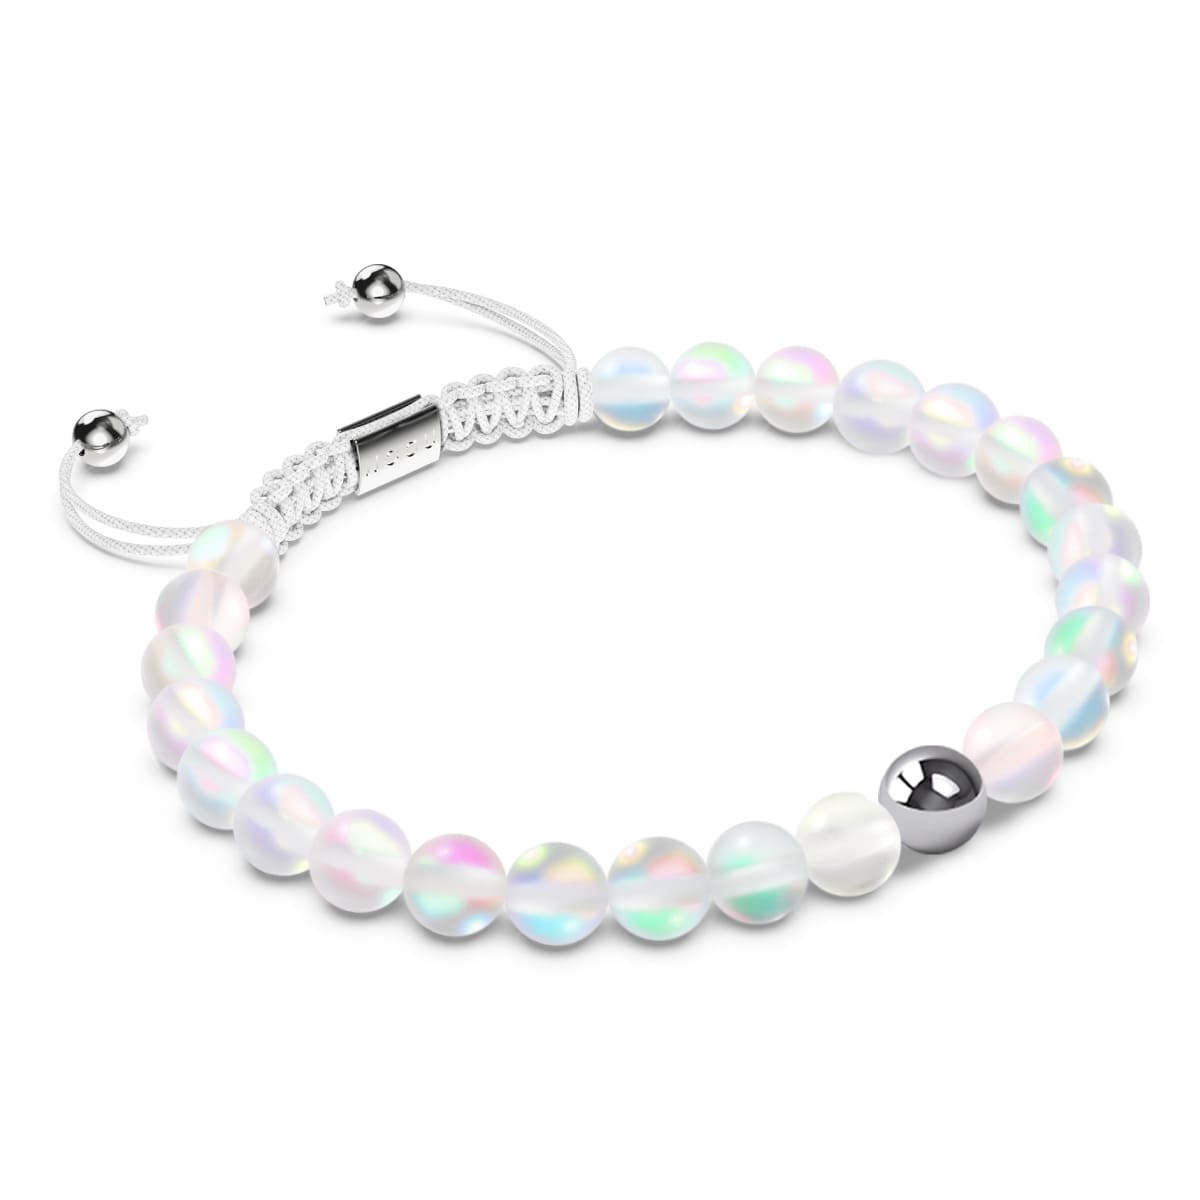 Rainbow White | Silver | Mermaid Glass Macrame Bead Bracelet